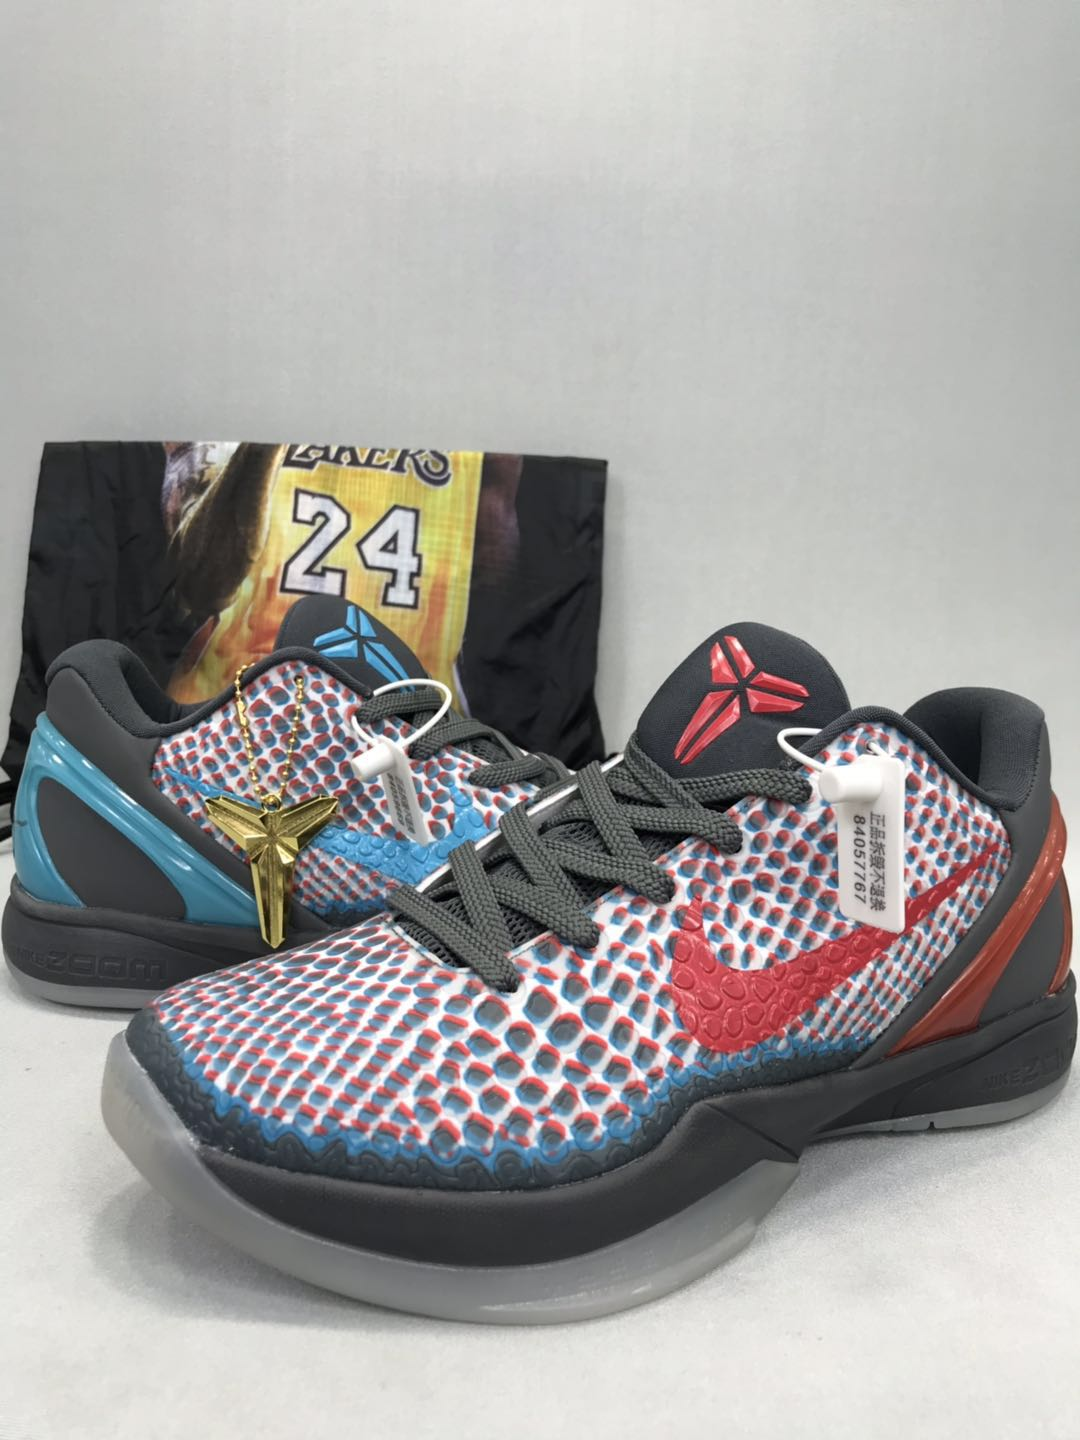 Nike Kobe 6 HollyWood Grey Black Red Blue Shoes